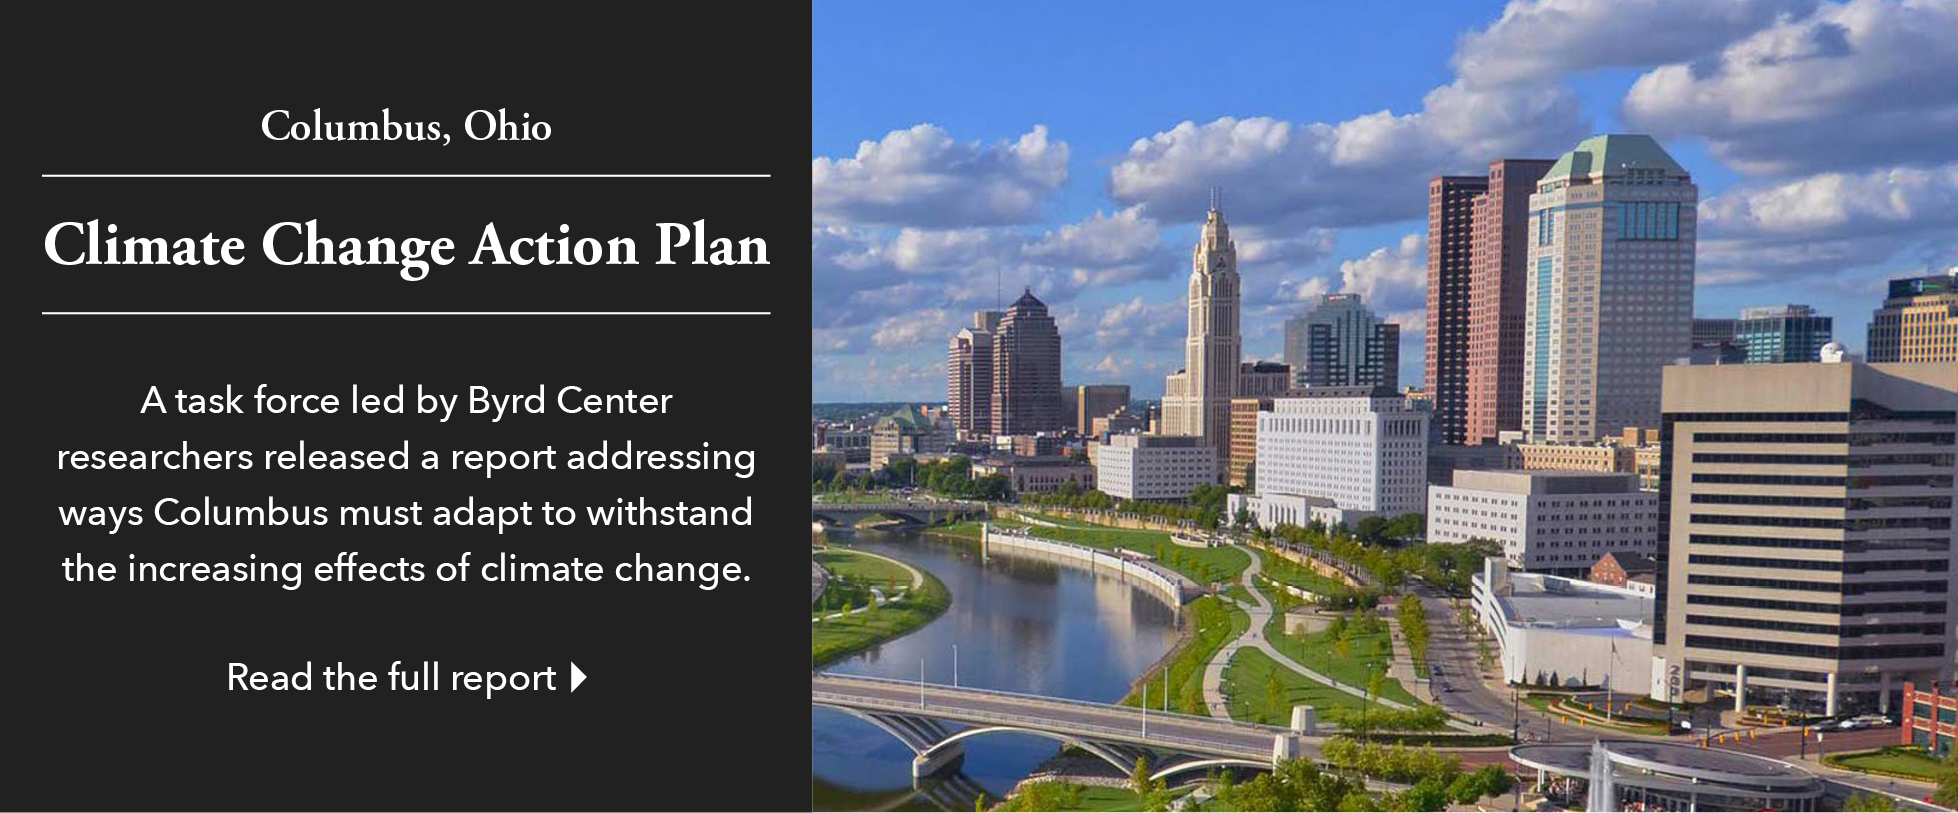 Columbus Climate Change Action Plan